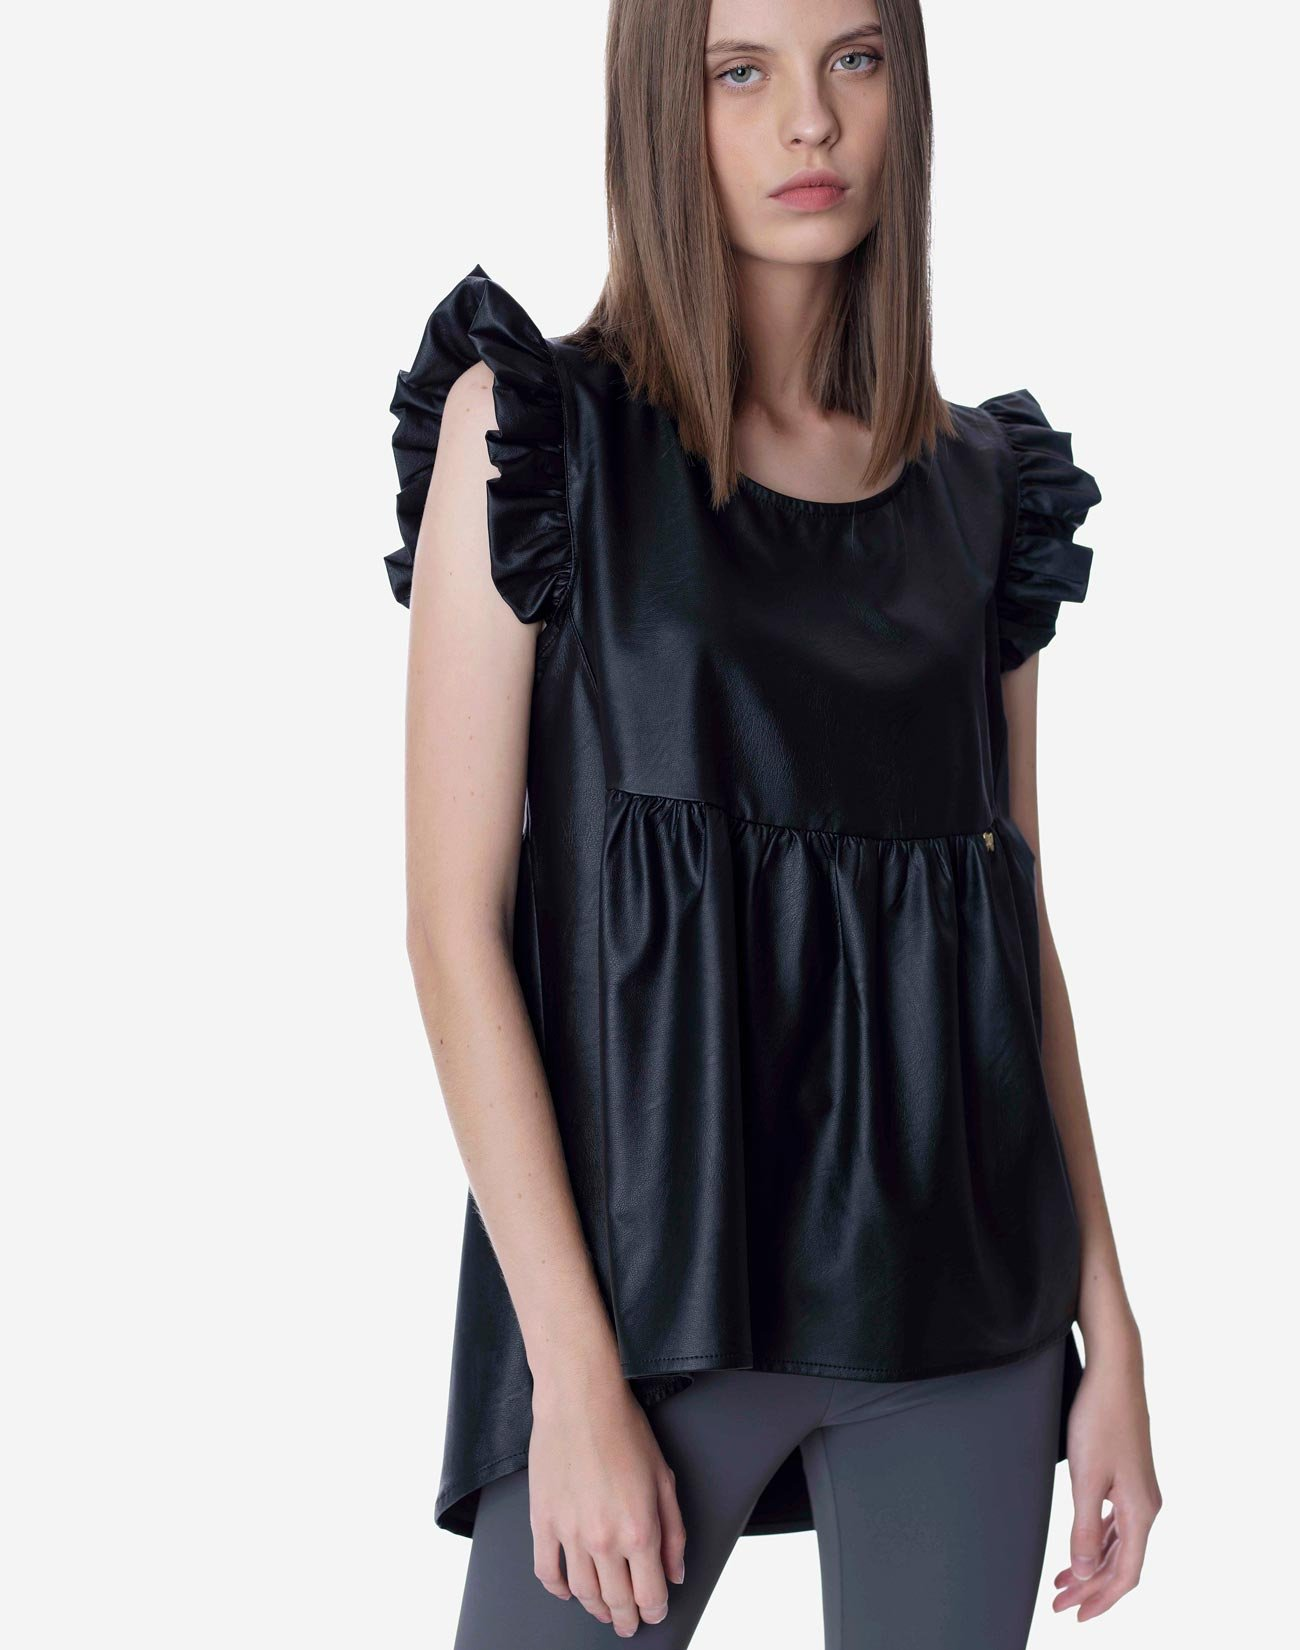 Faux leather top with ruffles